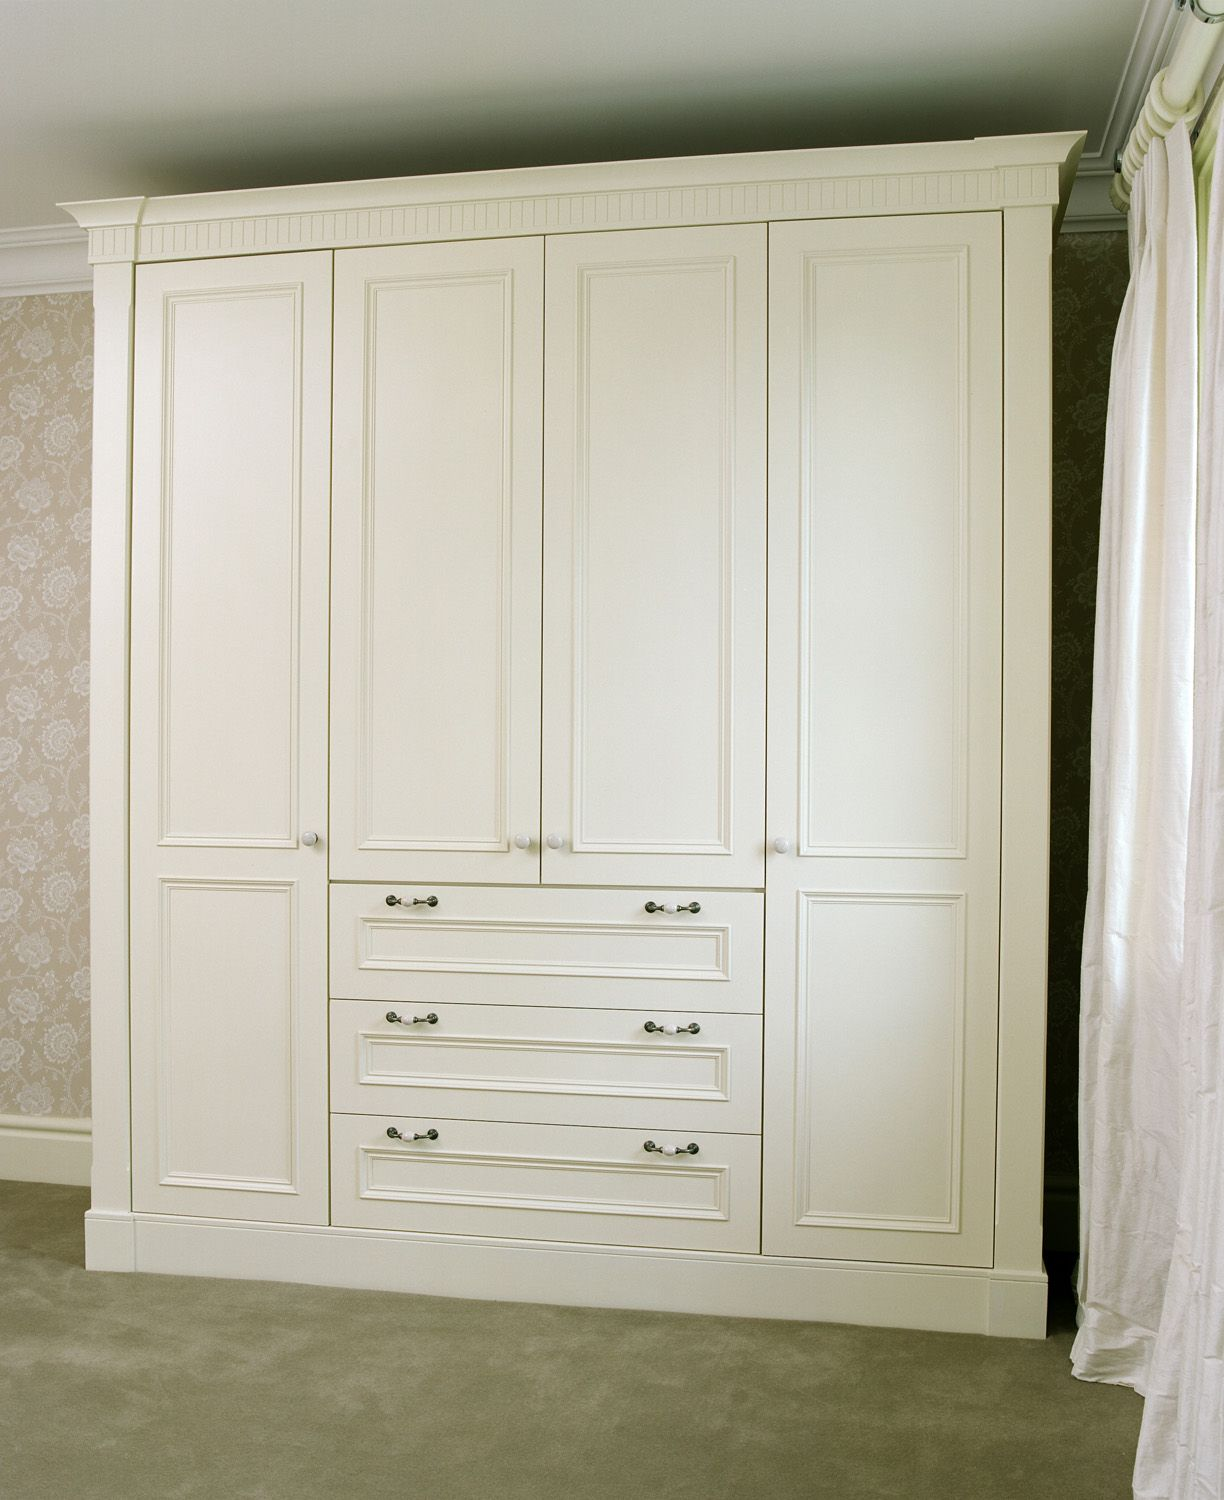 Bedroom furniture fitted wardrobes bedroom furniture for Bedroom ideas with built in wardrobes